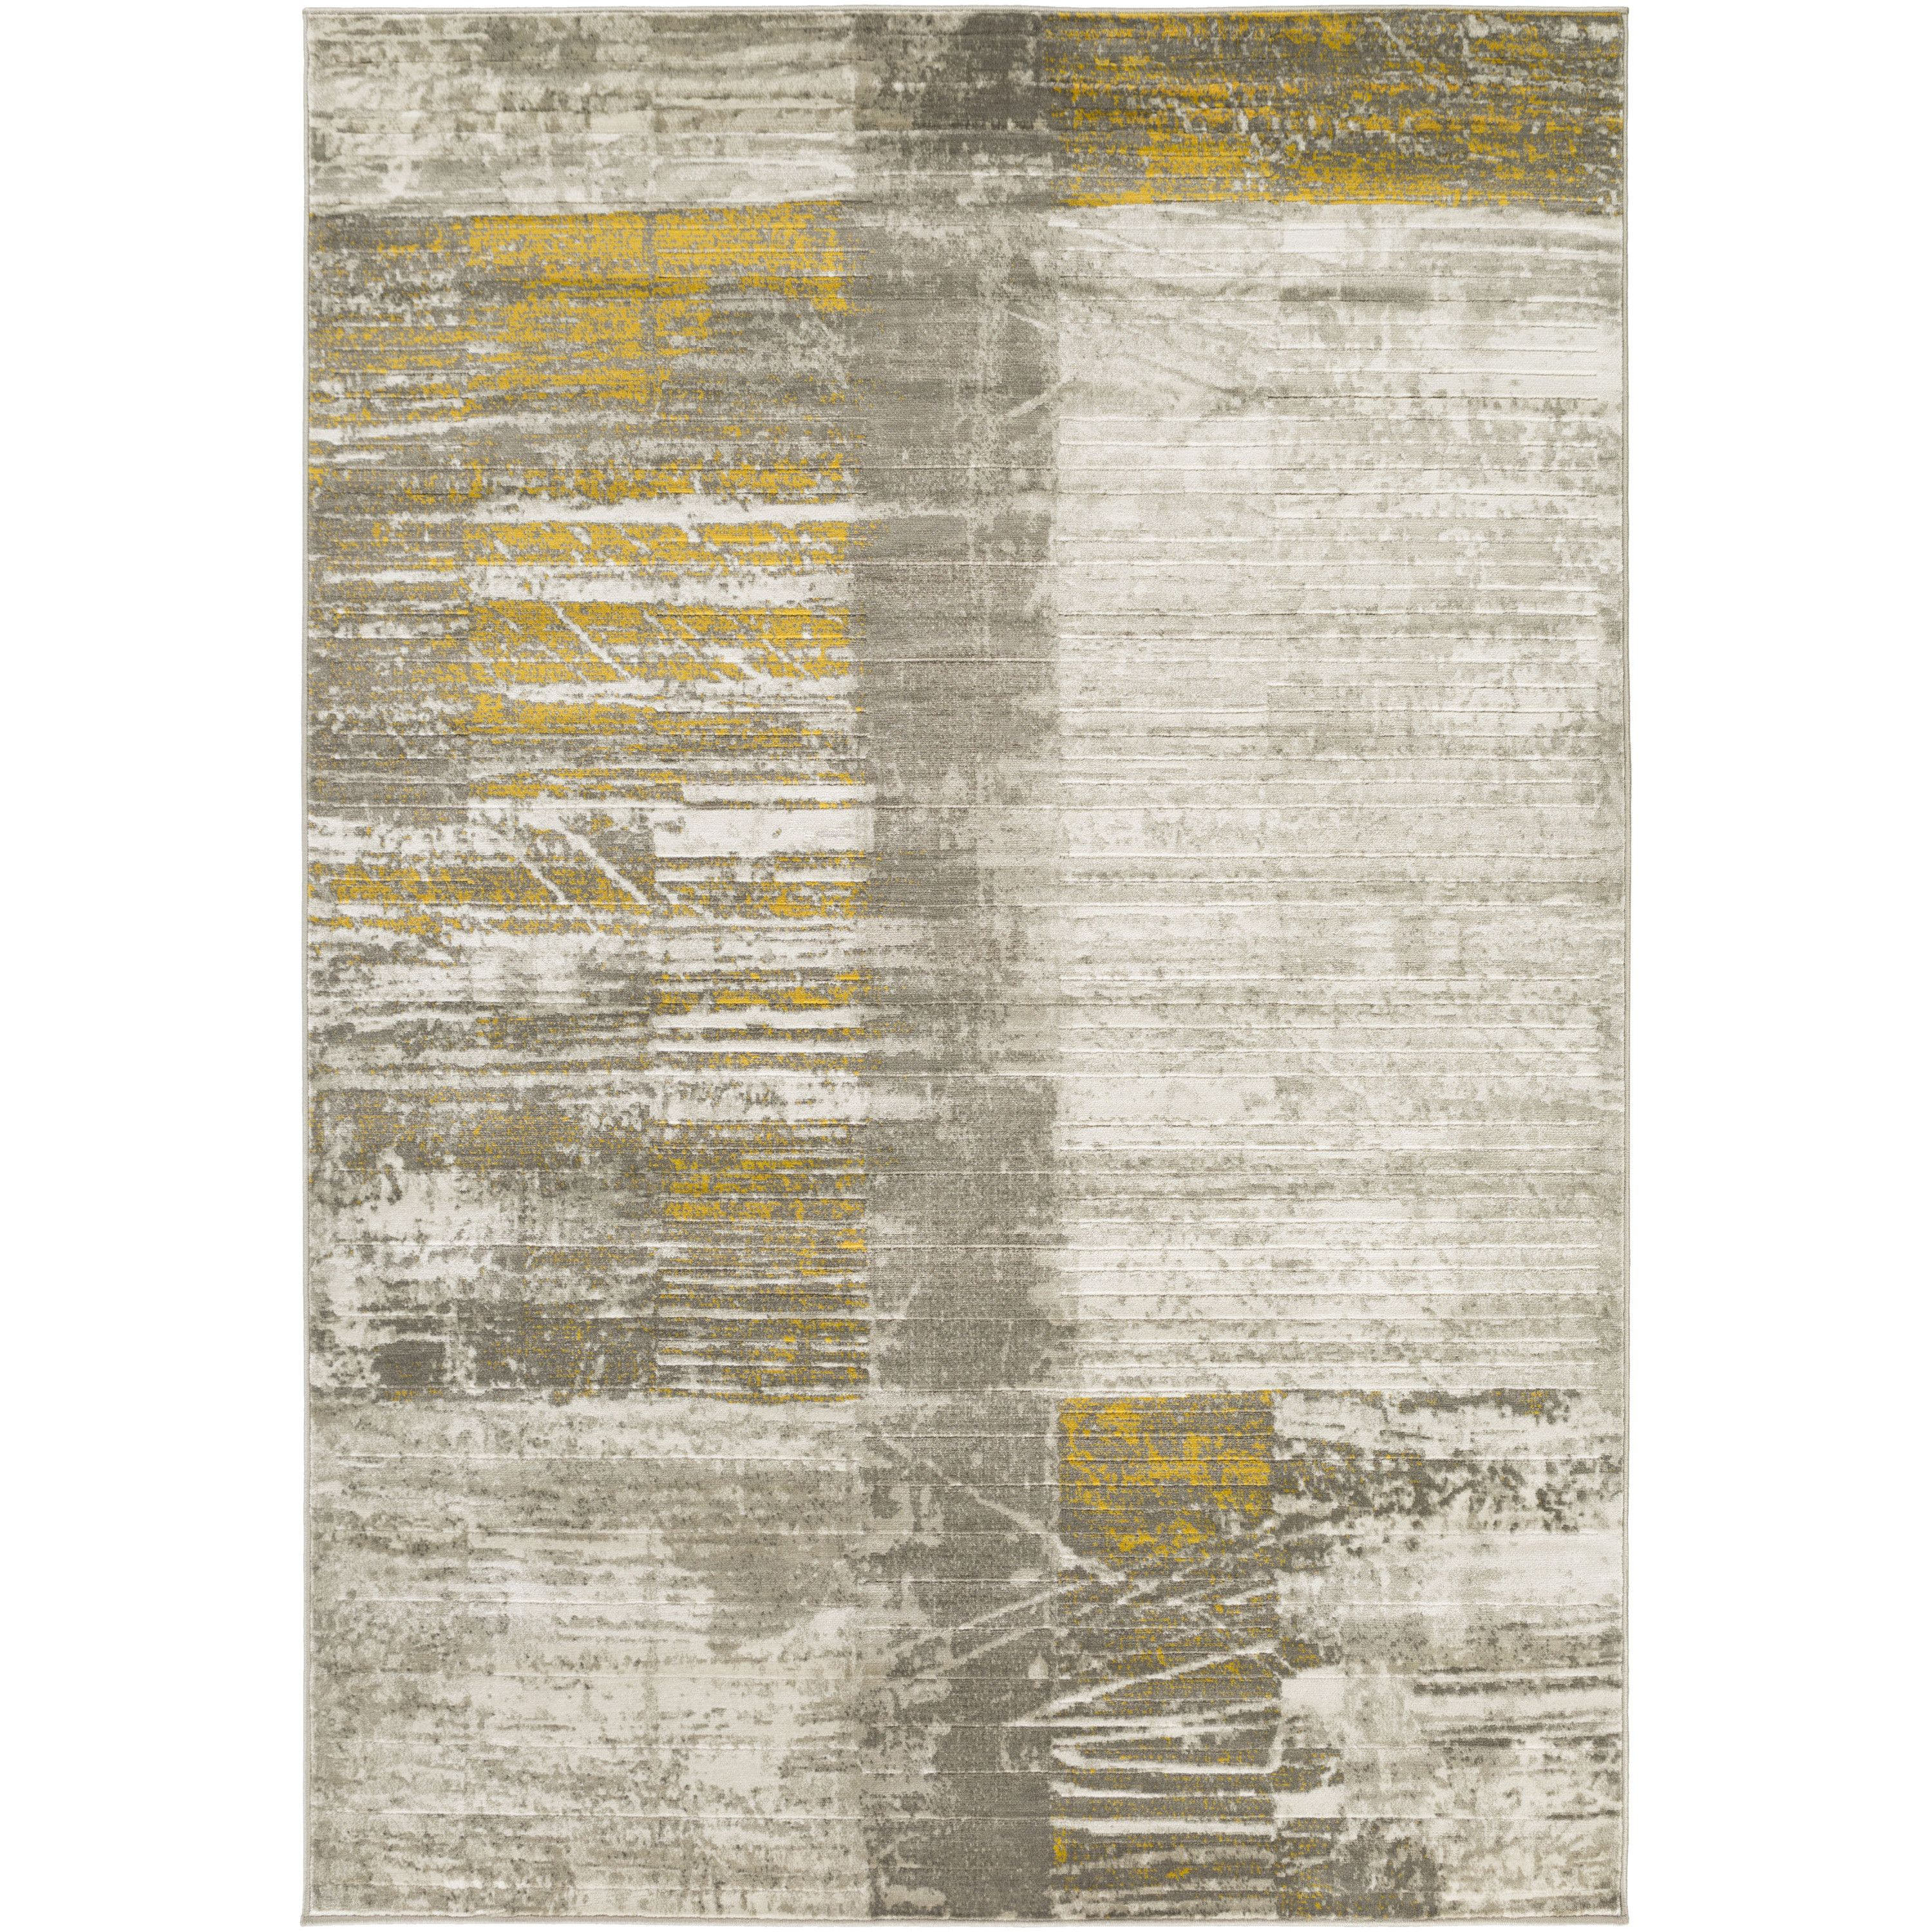 free garden product x porch trellis overstock yellow shipping rugs den rug grey marigny touro area today and home